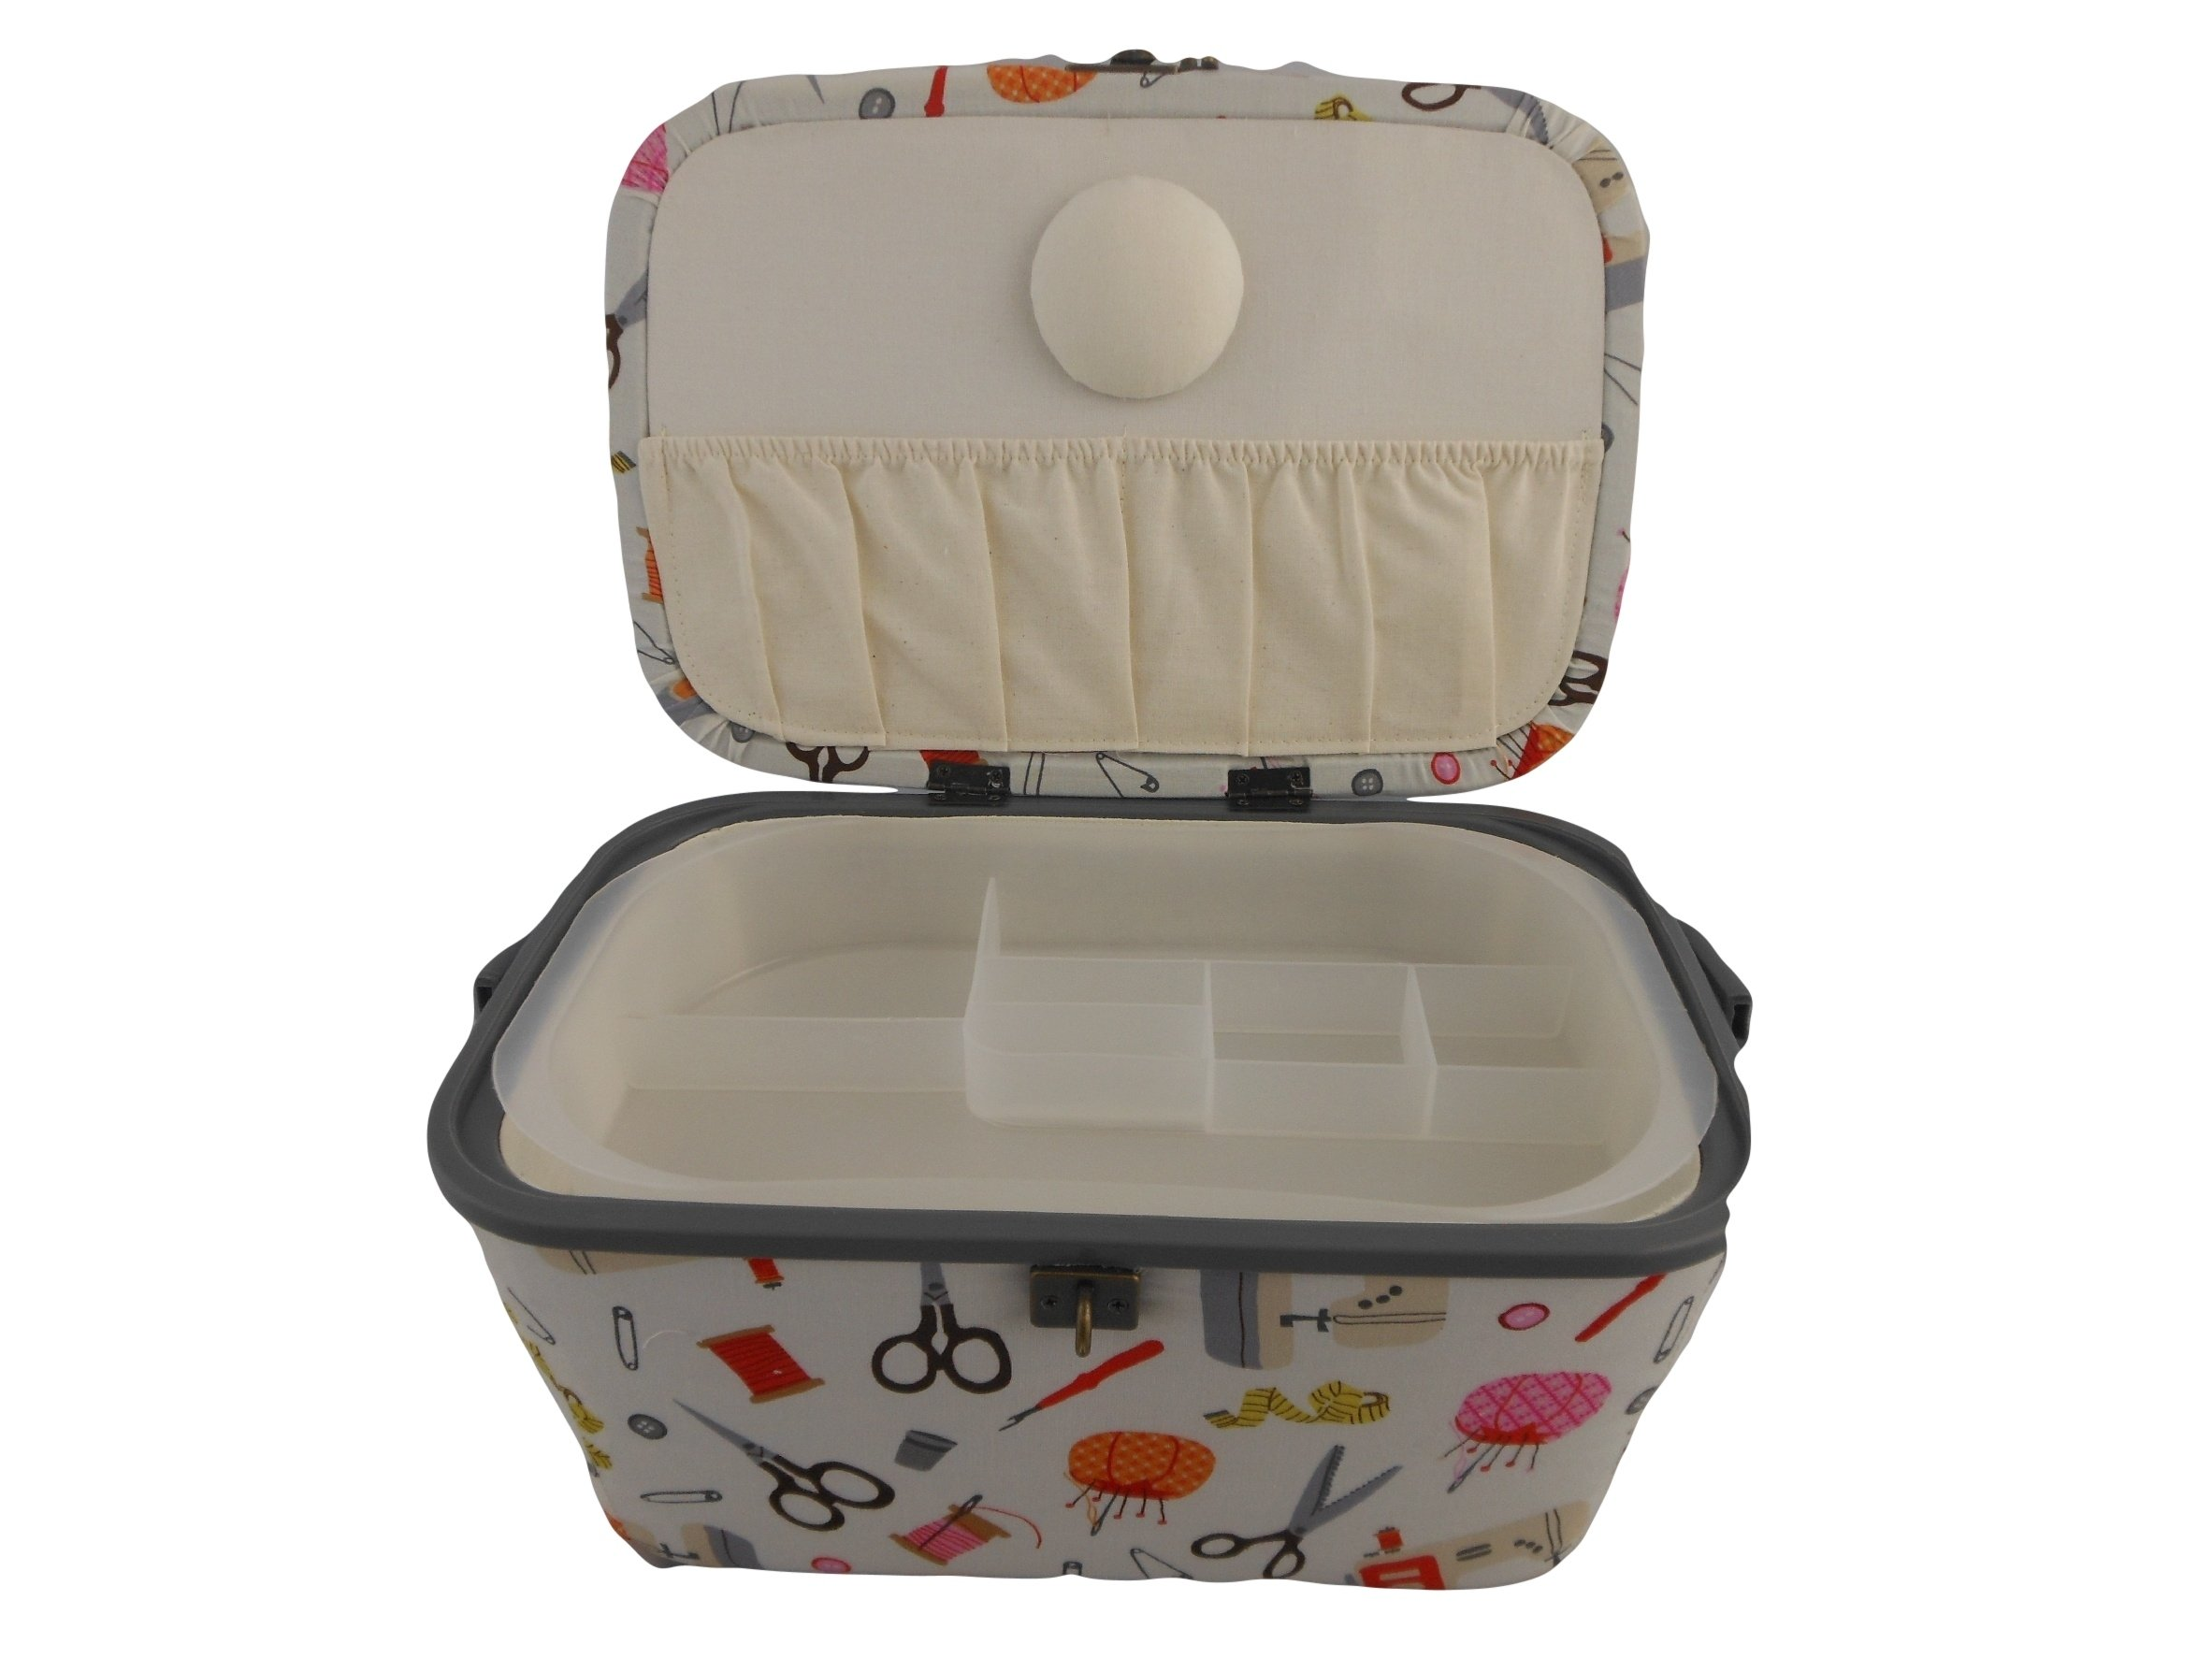 Galleon Dritz Sewing Basket With Notions Light Beige